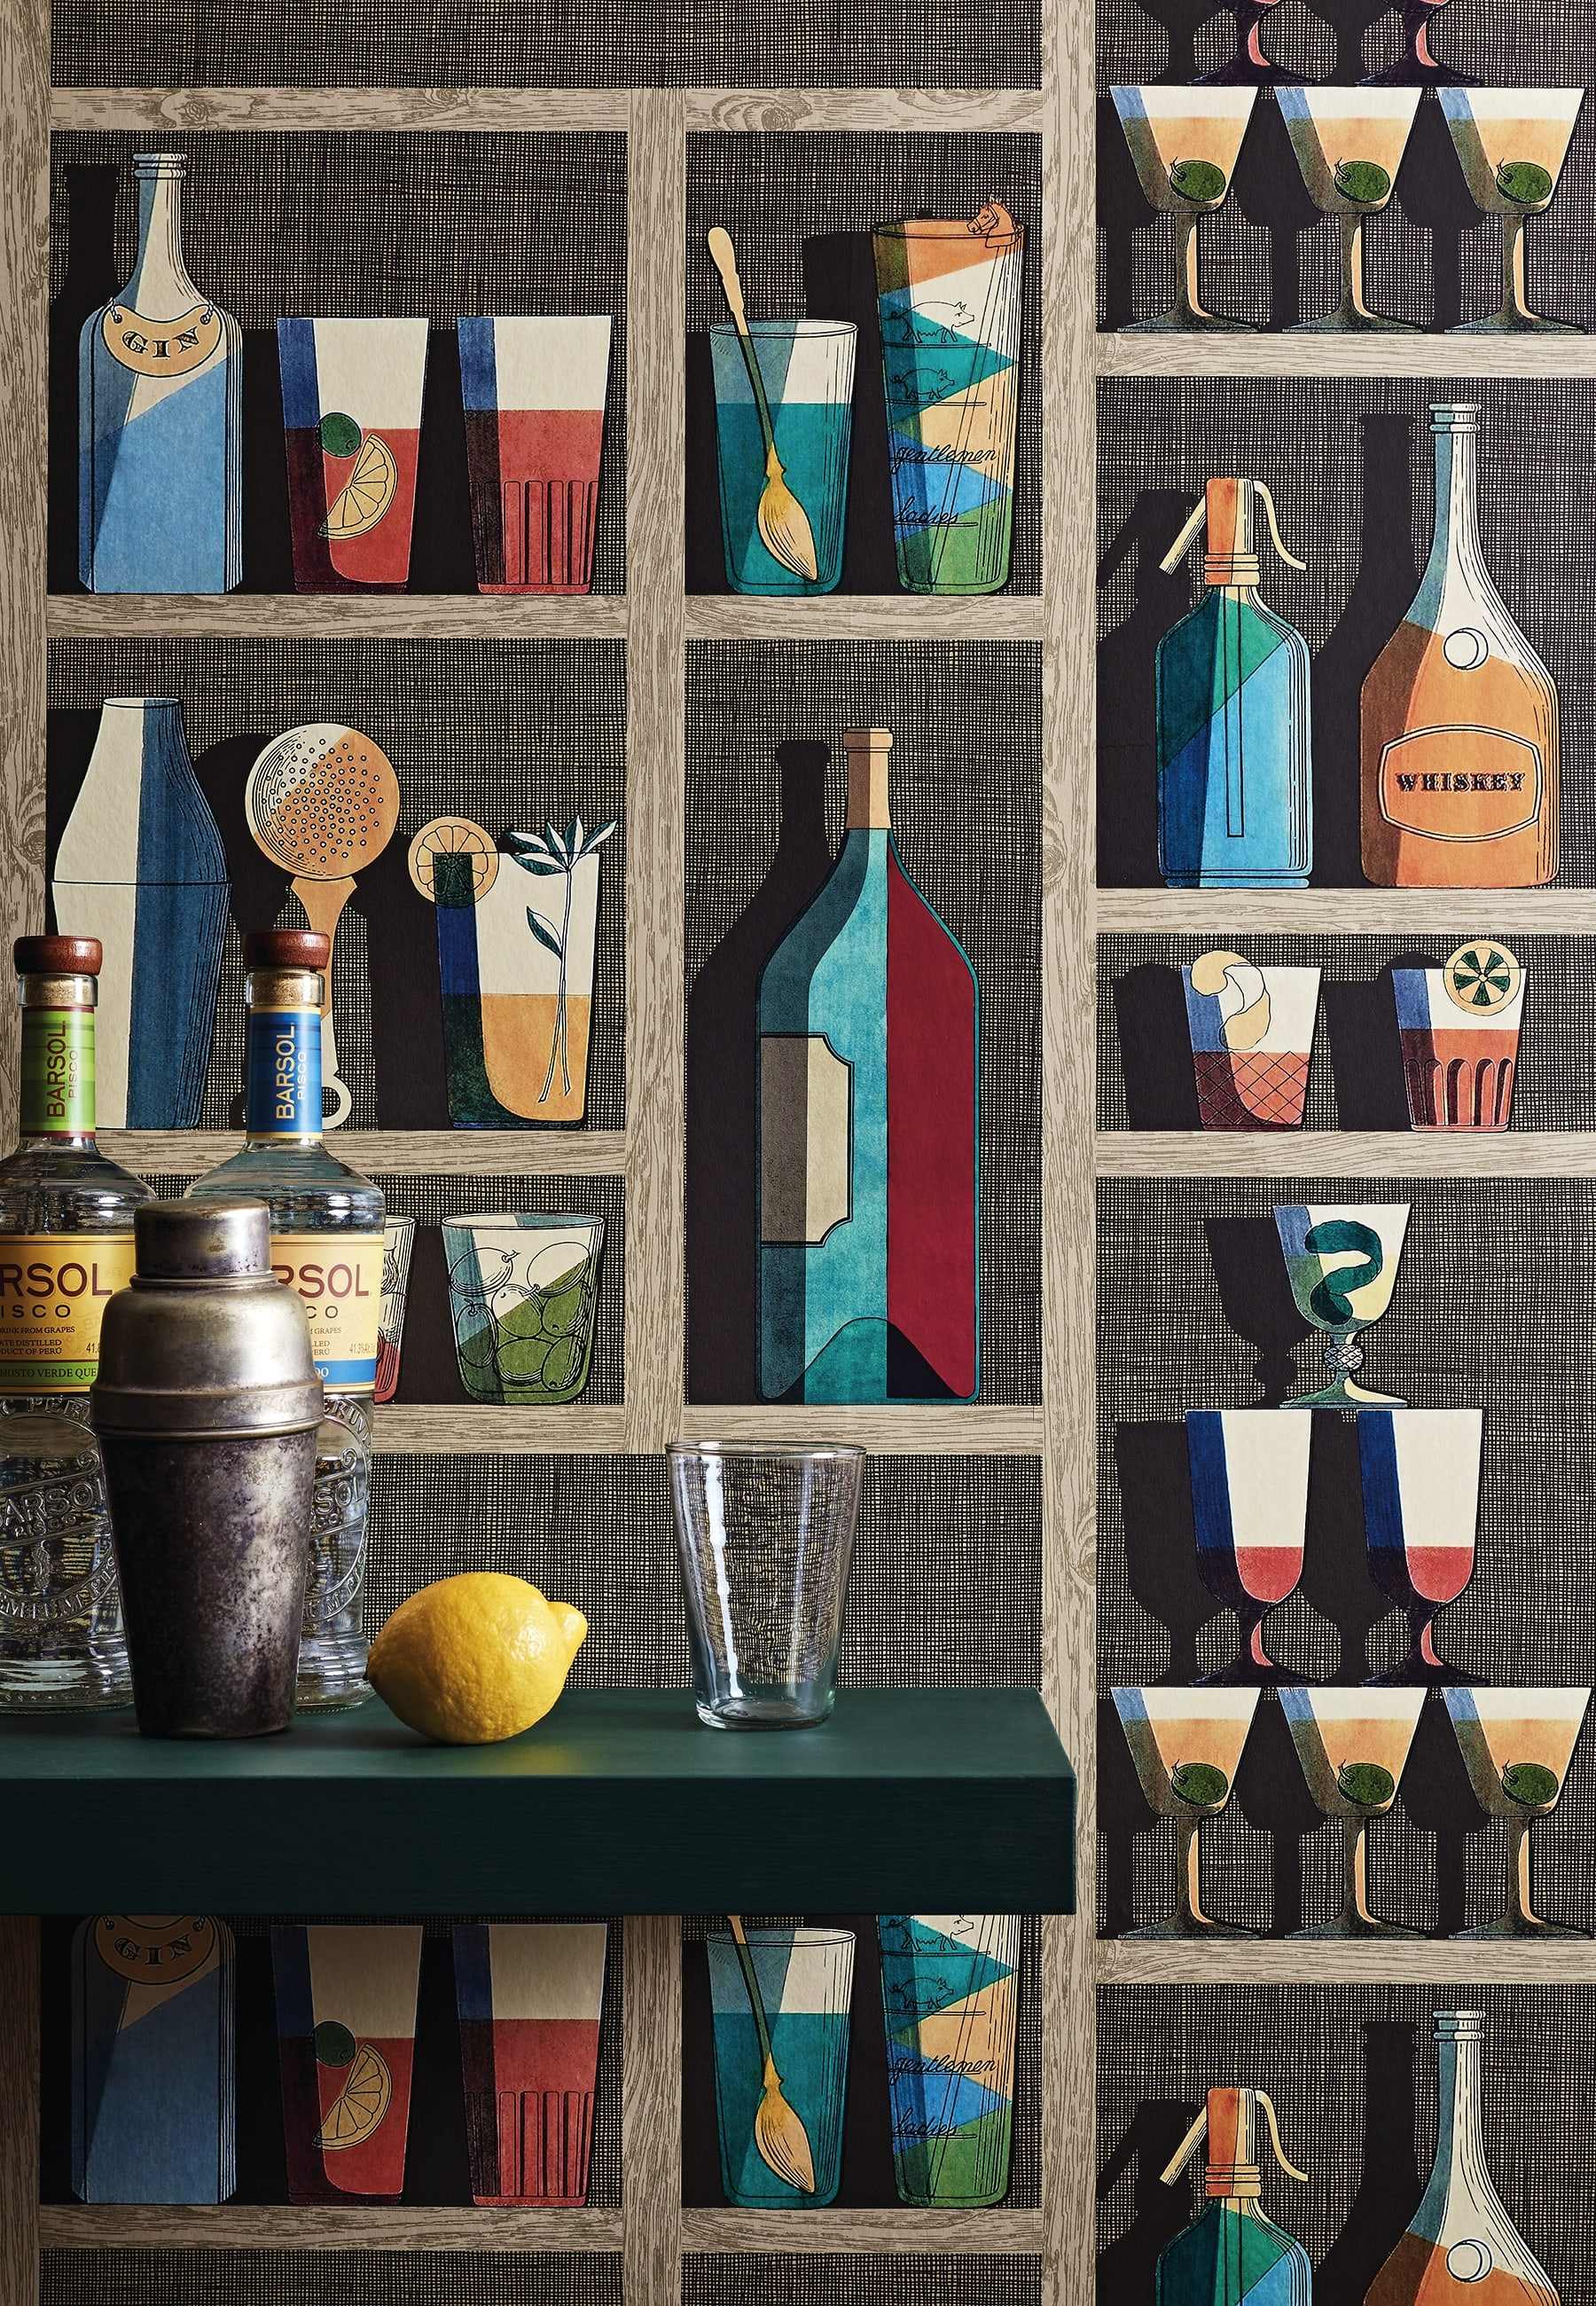 C_S_Fornasetti_Senza_Tempo_Cocktails_114-23043_Detail_RGB.jpg